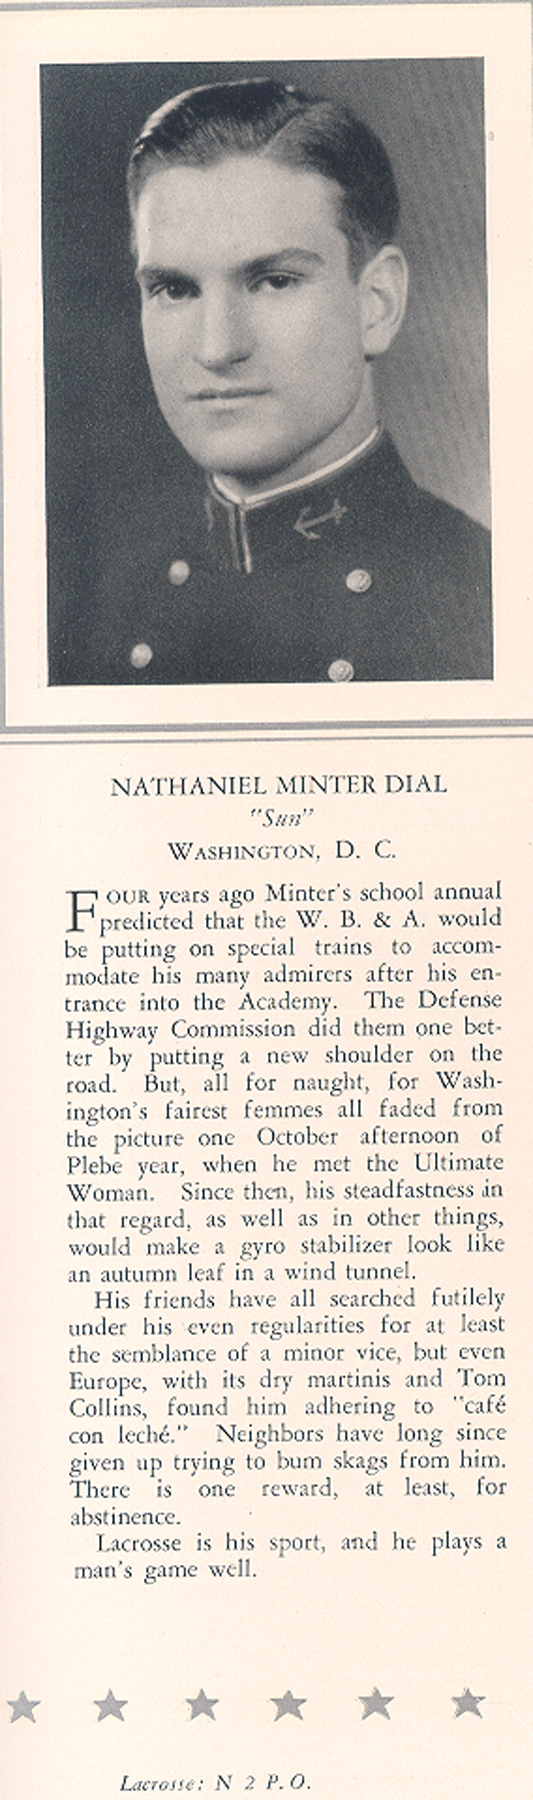 Nathaniel Minter Dial USNA classof1932 Yearbook entry.jpg